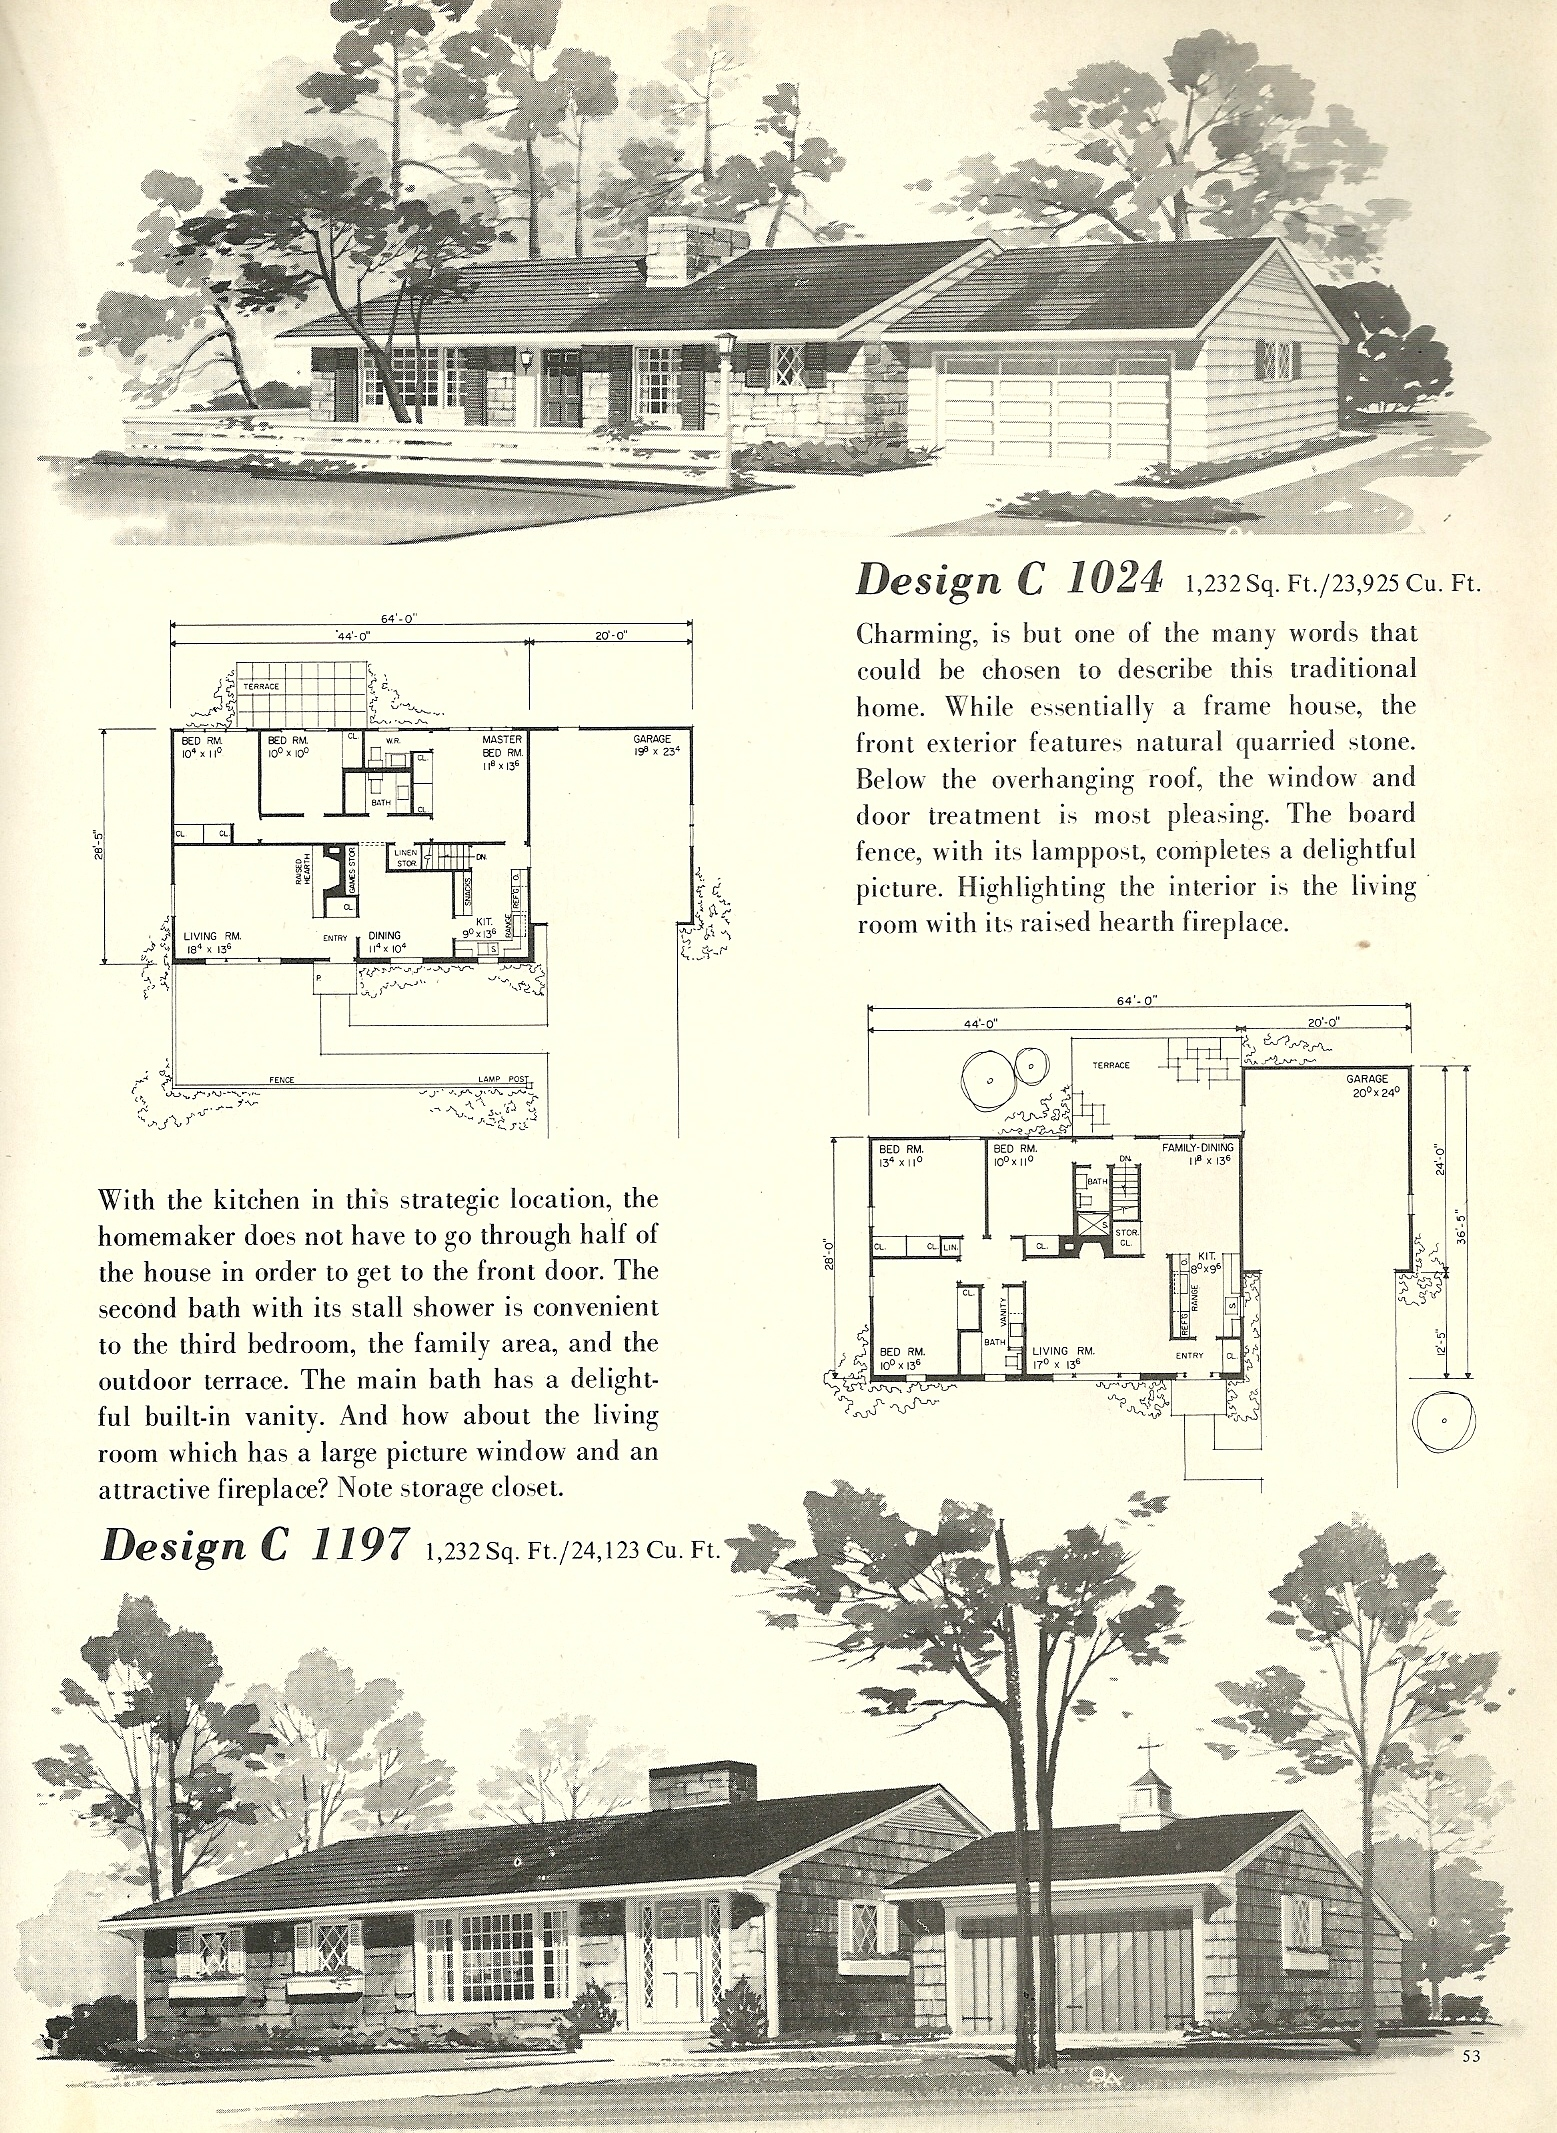 Vintage House Plans 1024 on 1960s L Shaped Ranch House Plans